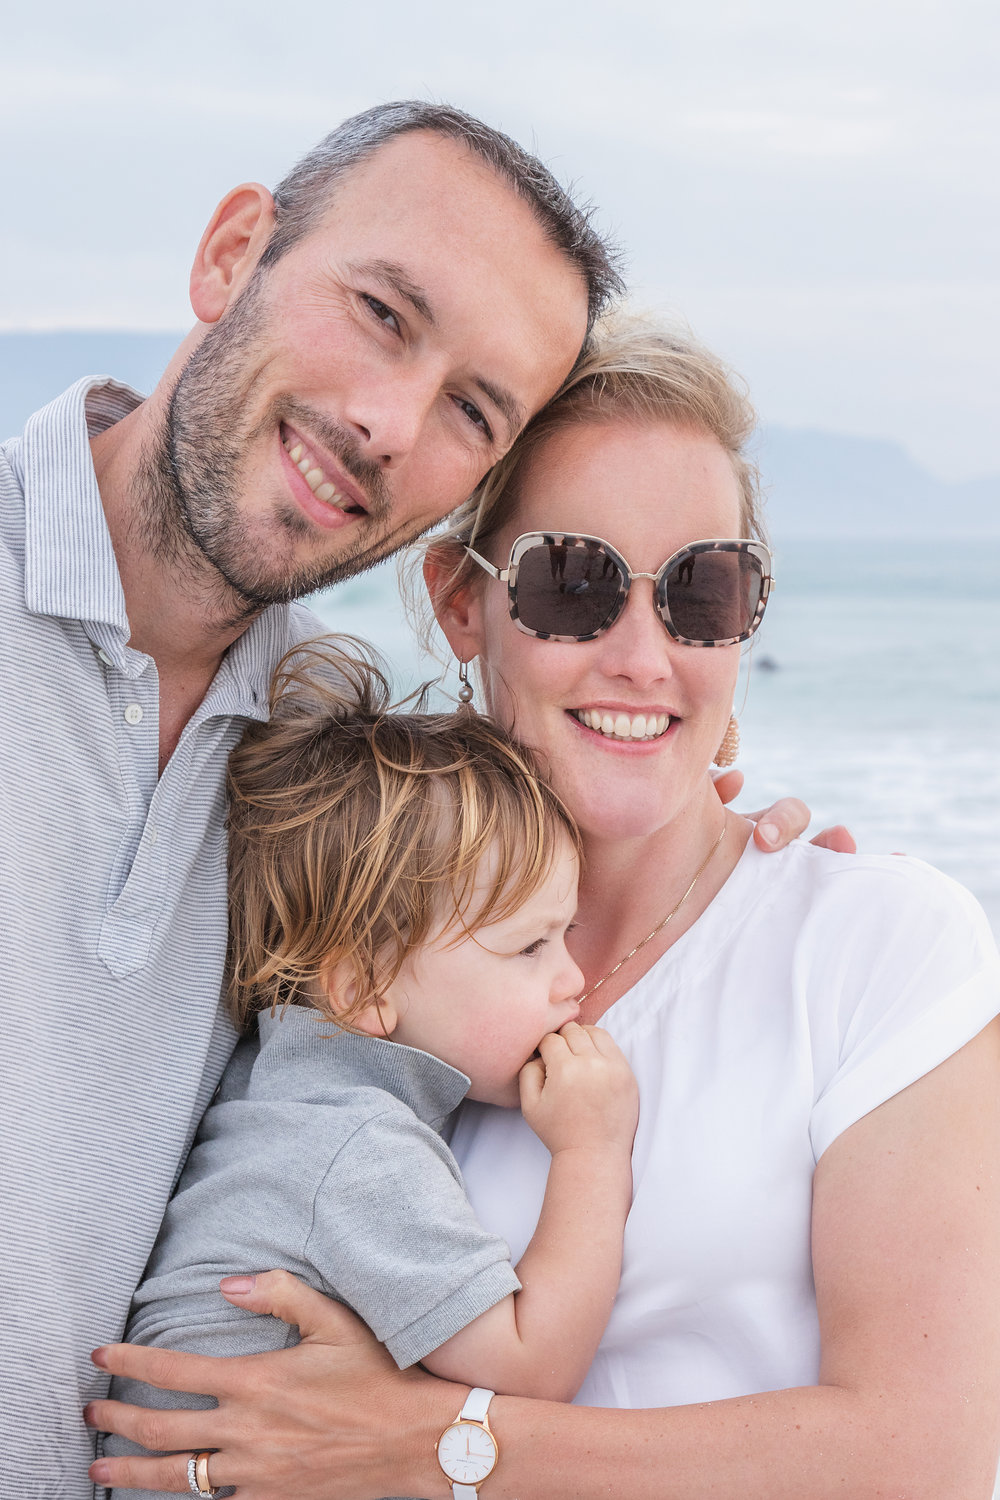 Ken Treloar Photography - Monteban Family Photos - Cape Town 2018 (high-res)-17.jpg